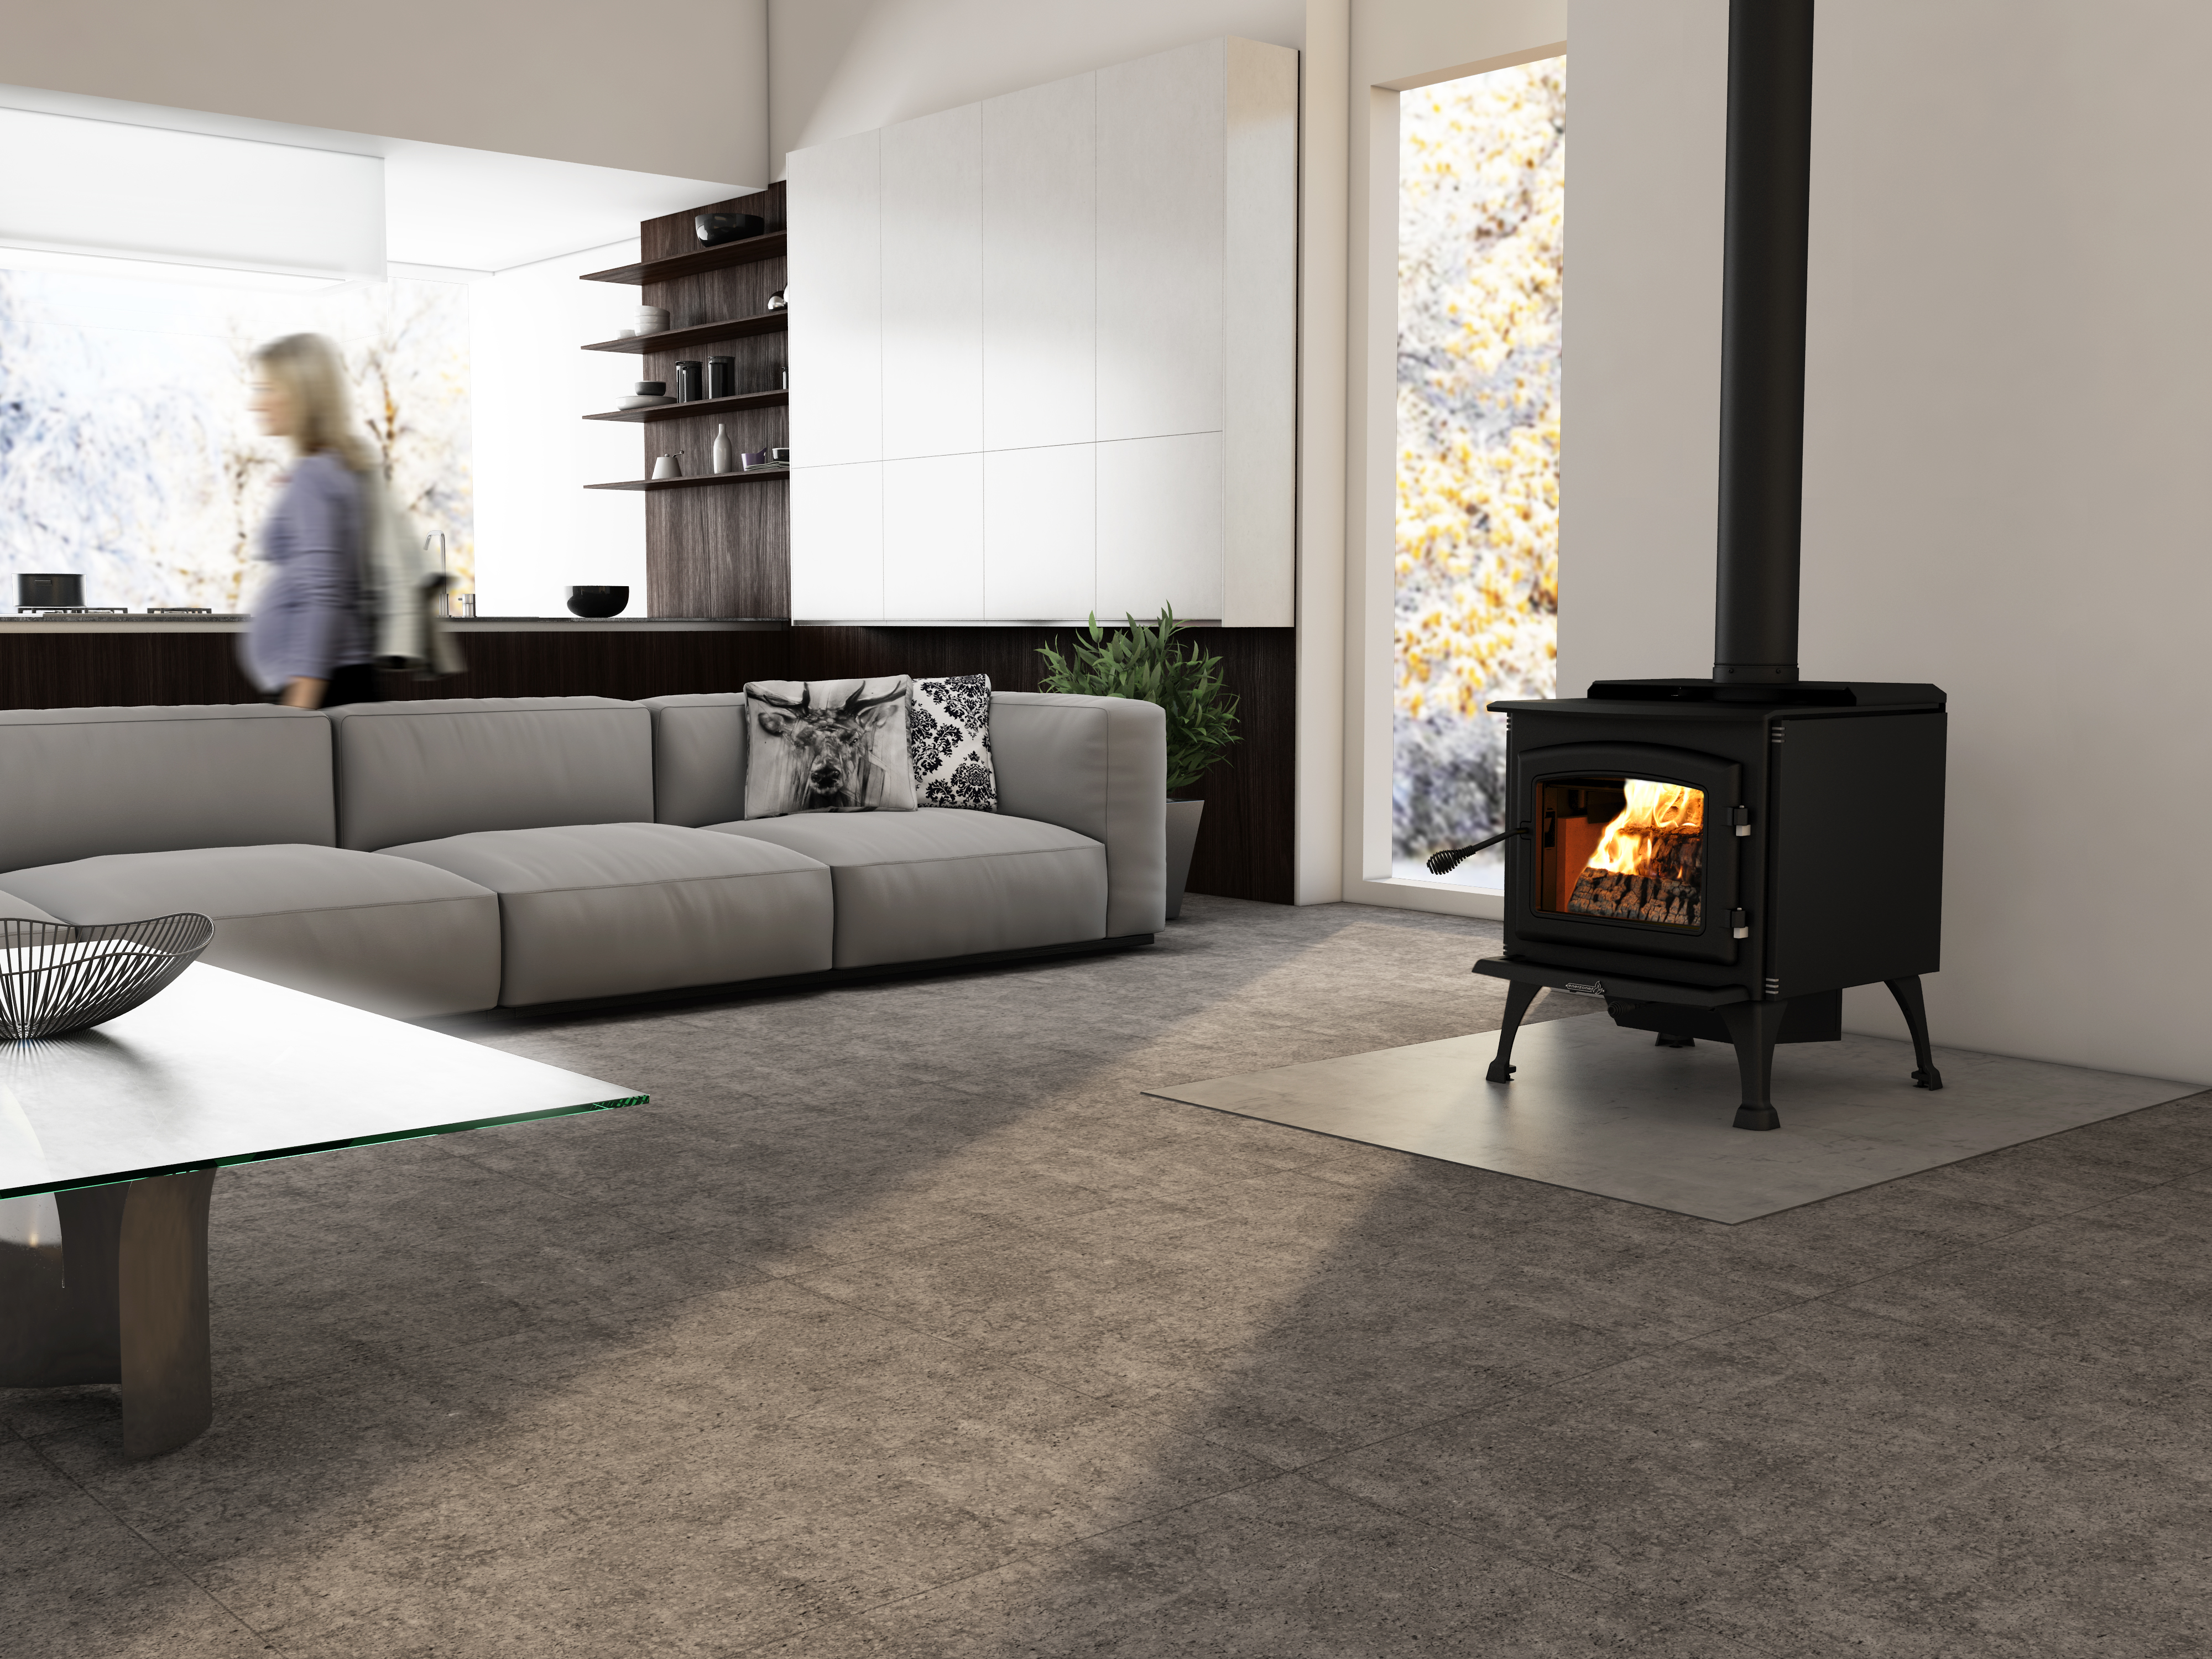 living room designs with wood stove cabinet storage solution 2 9 stoves enerzone